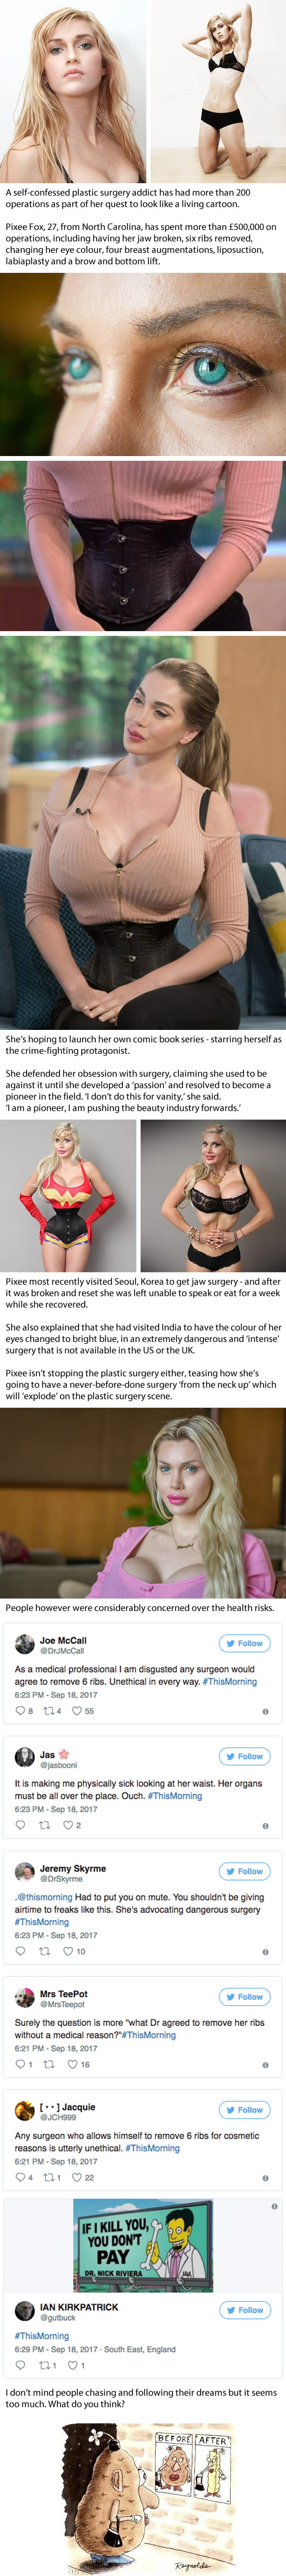 Woman Removes Six Ribs To Look Like Wonder Woman And Claims: 'I Don't Do This For Vanity'